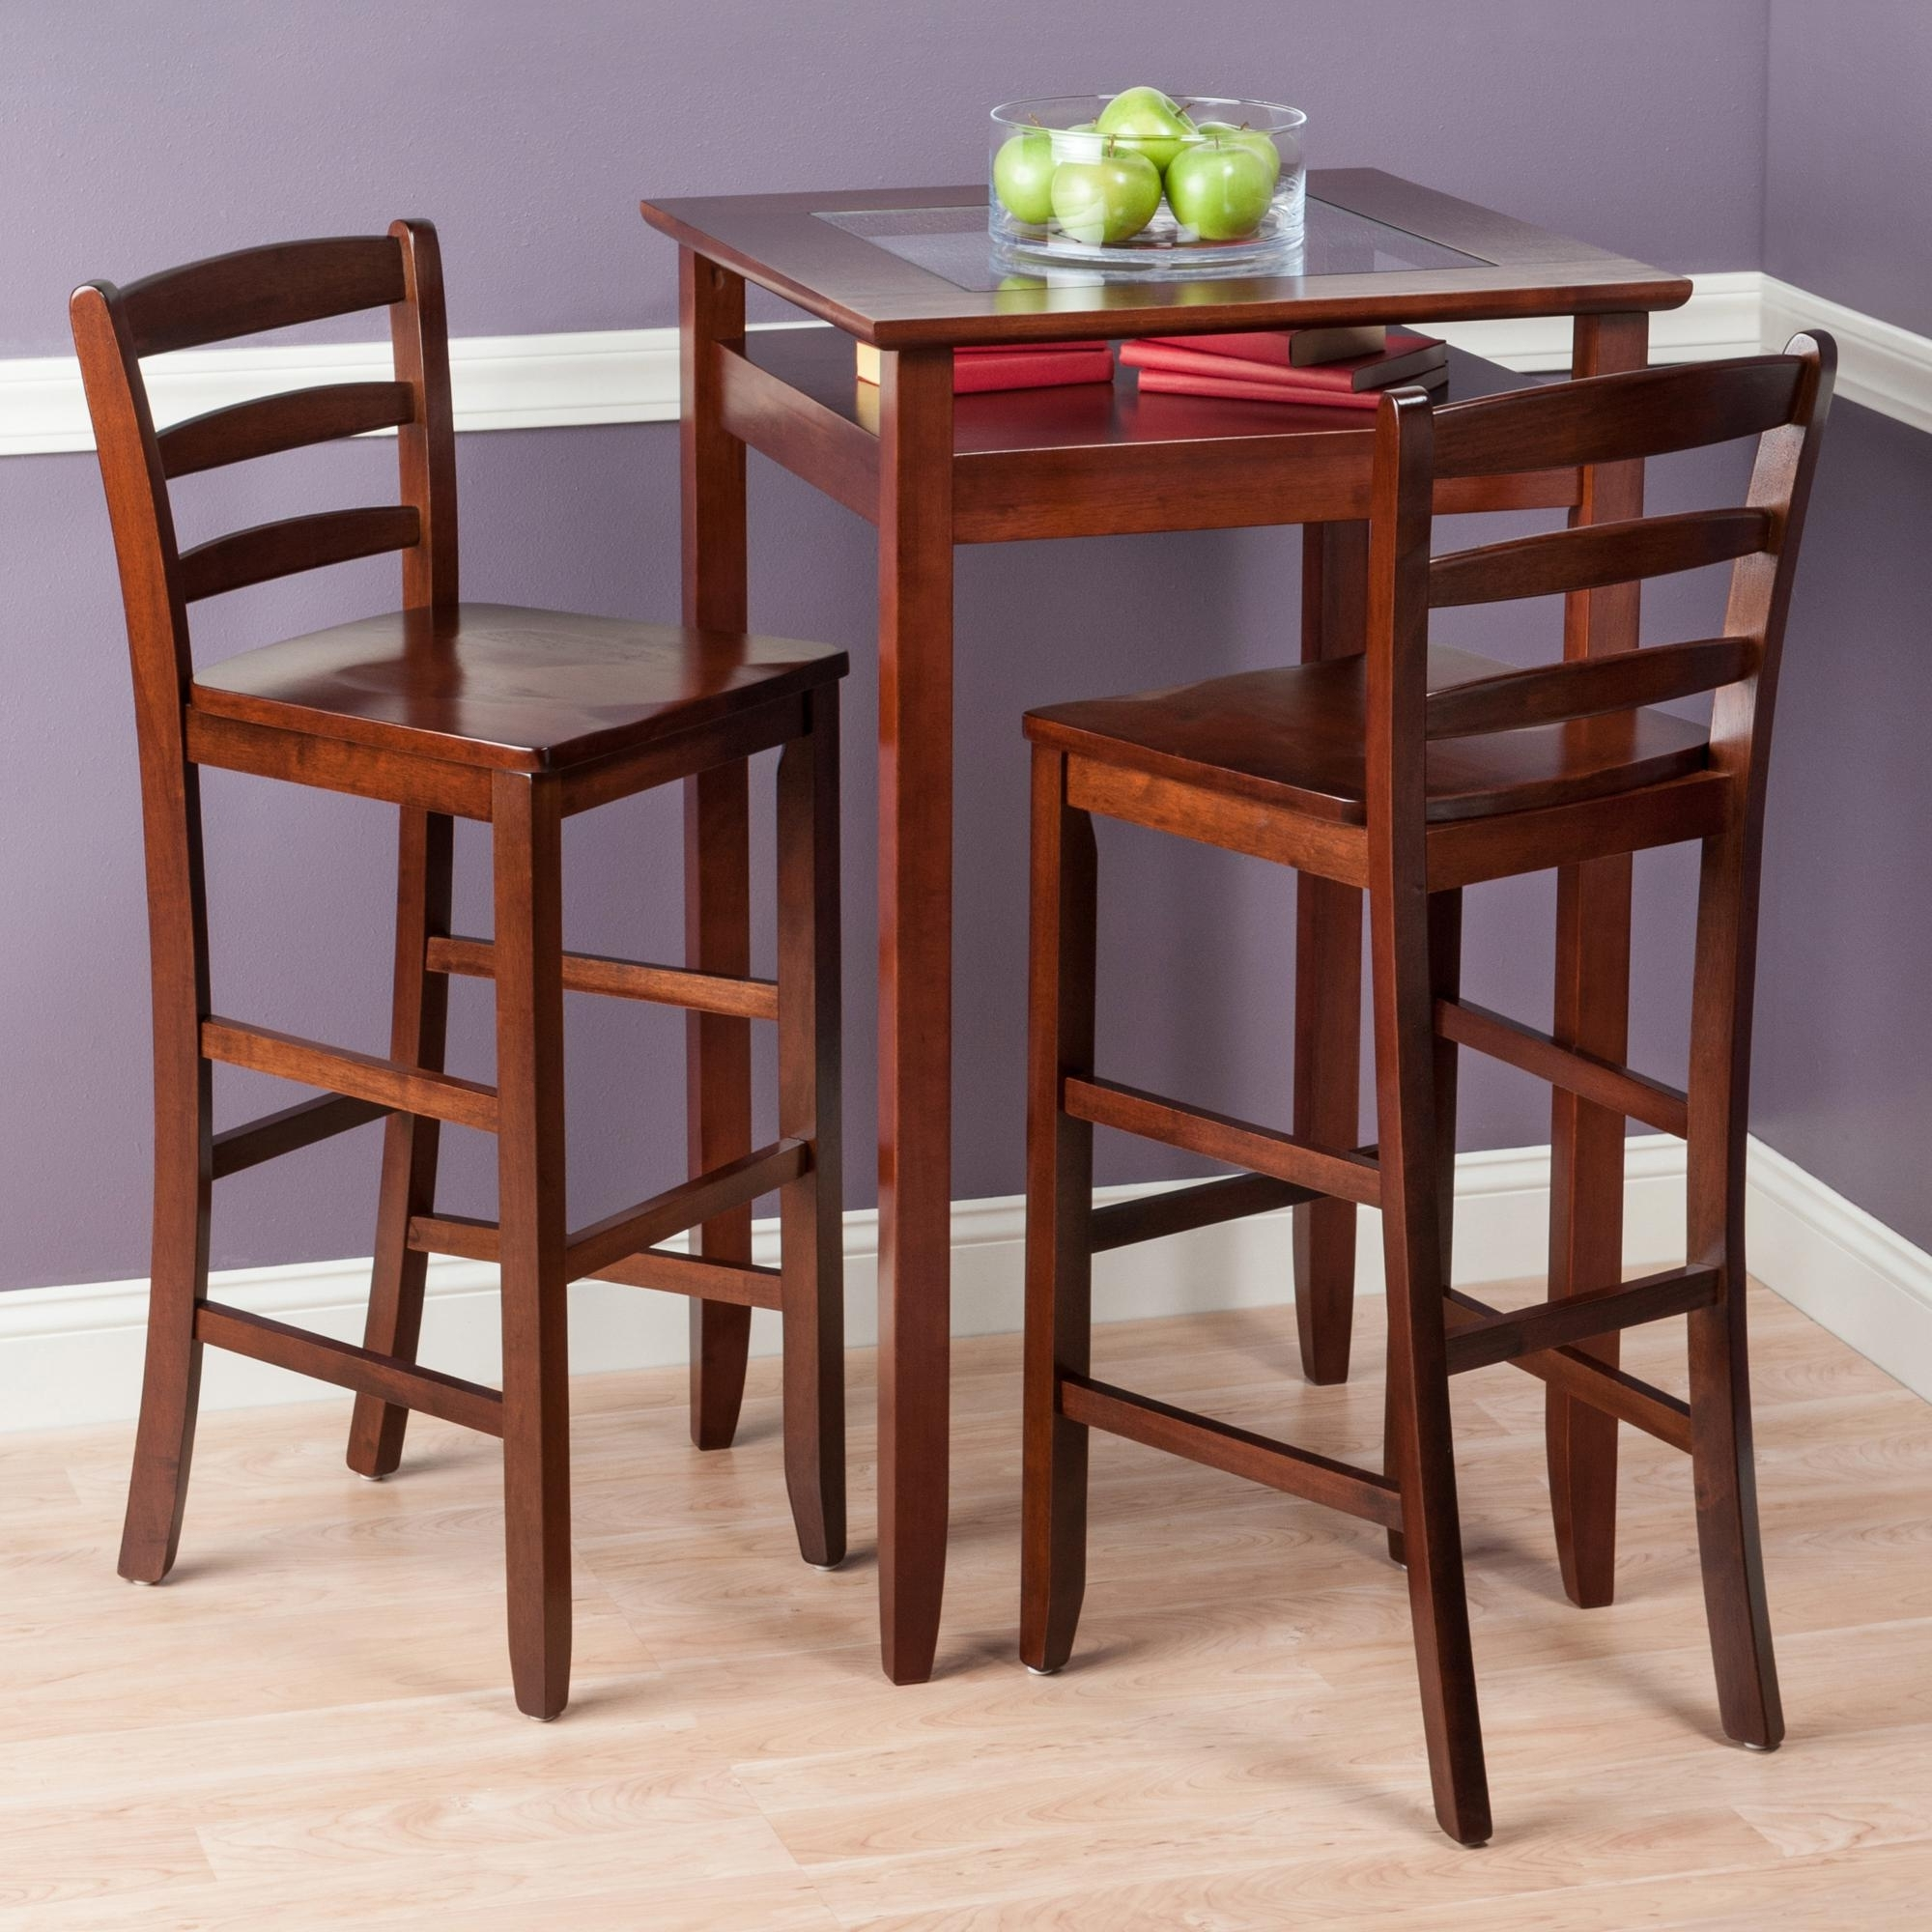 2017 Dining Table Sets For 2 Within Amazon: Winsome Wood Halo 3 Piece Pub Table Set With 2 Ladder (Gallery 7 of 25)